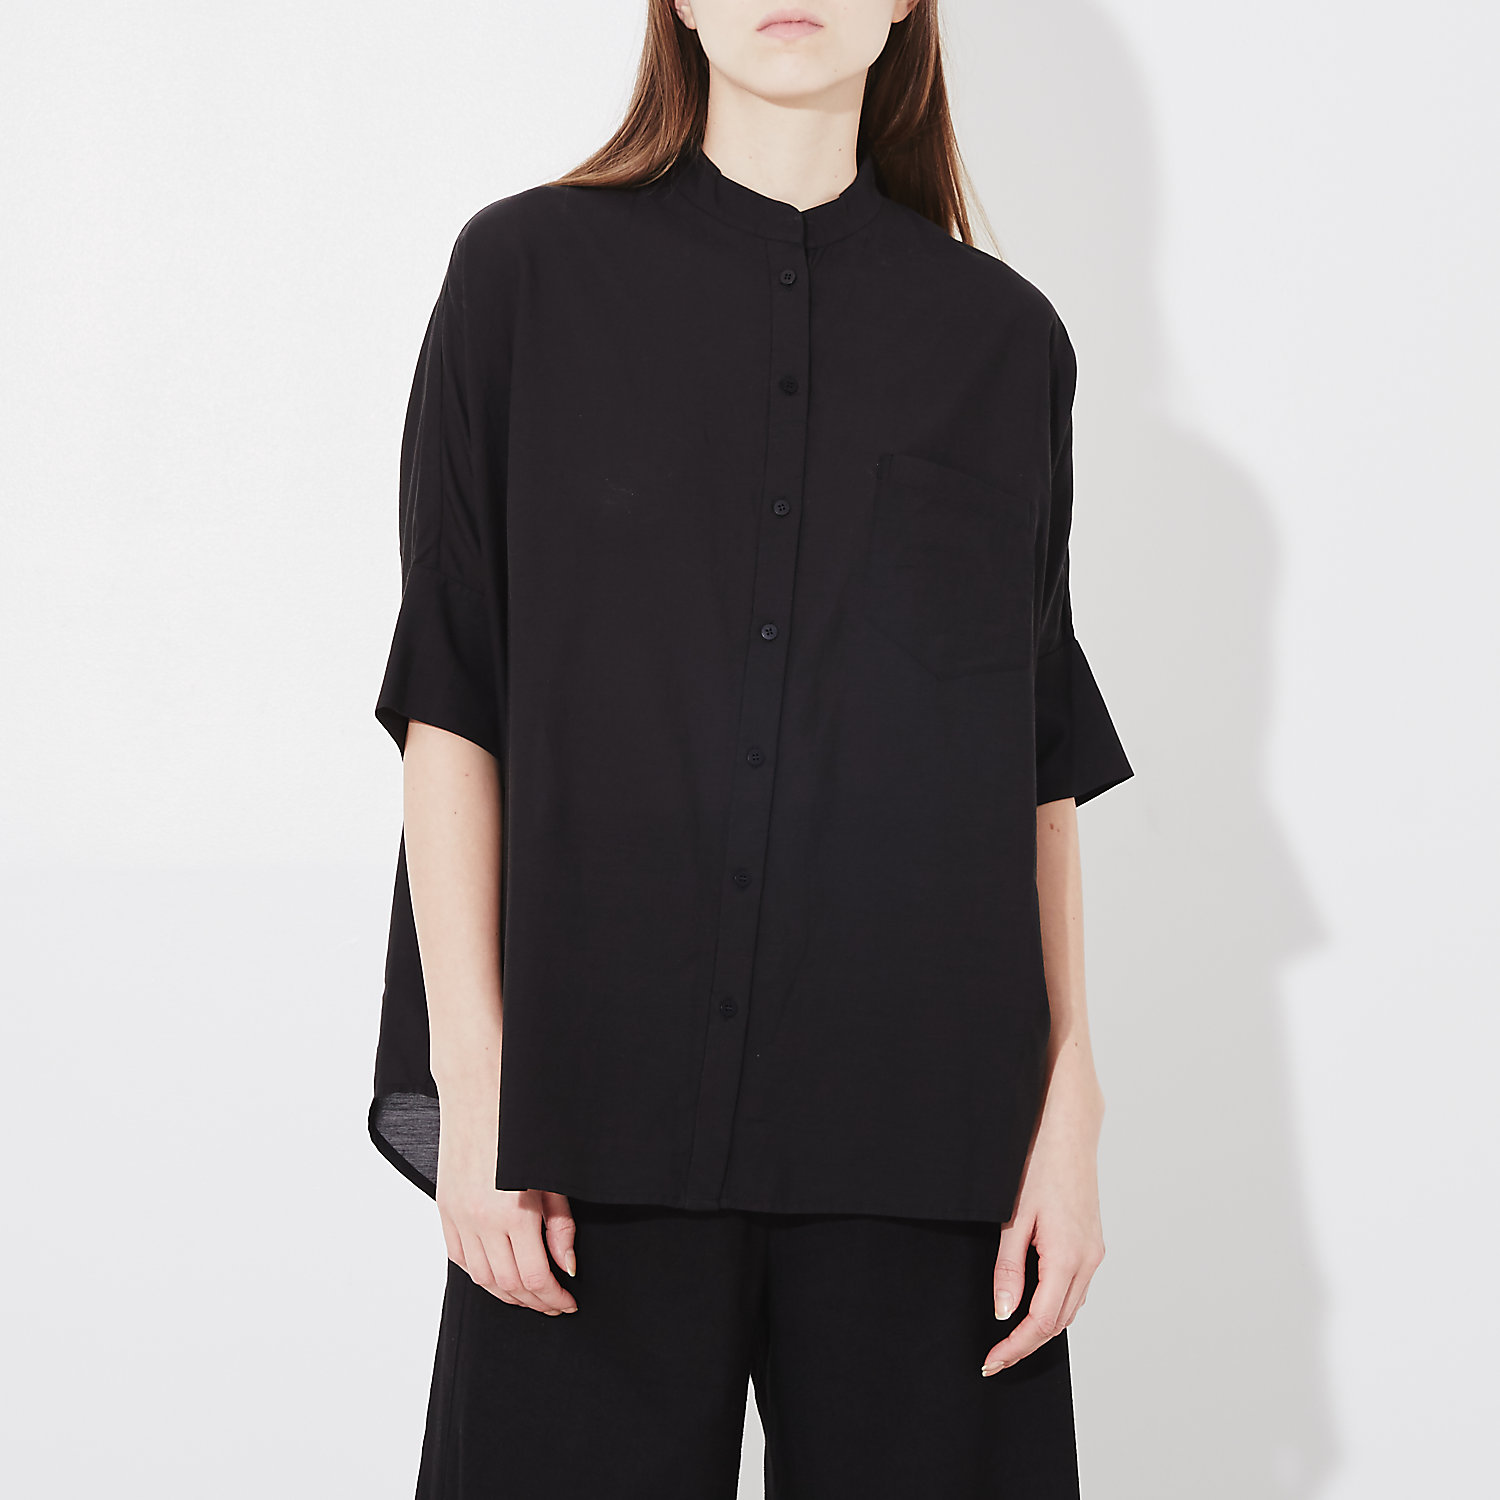 OVERSIZED STAND COLLAR SHIRT